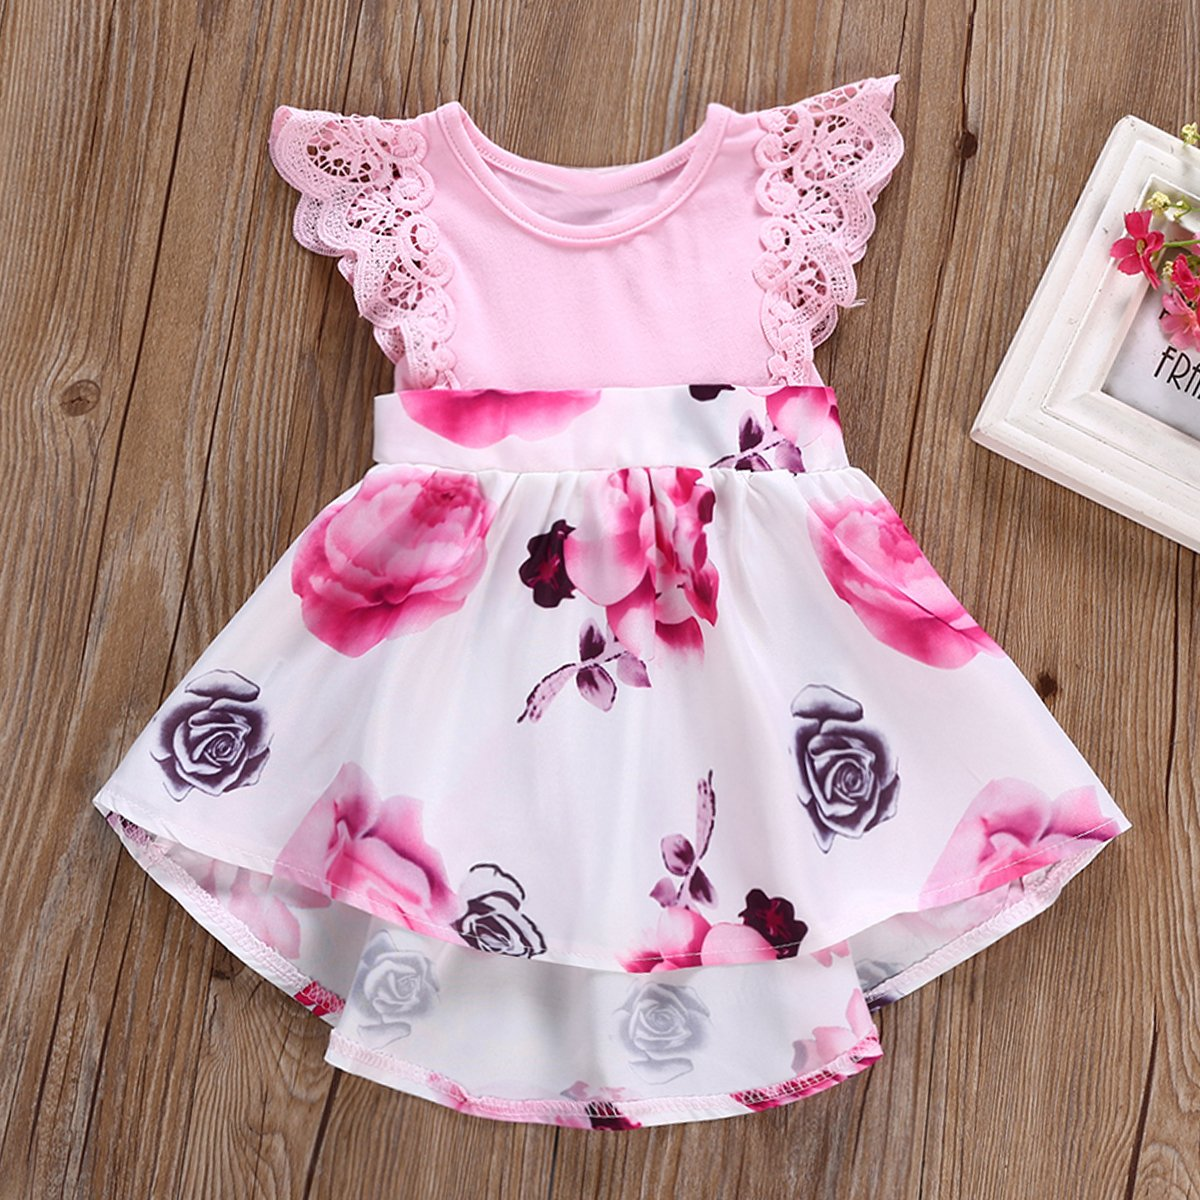 Newborn Baby Girl Pink Flower Print Floral Hollow Flounce Sleeve Lace Midi Skirt Suit